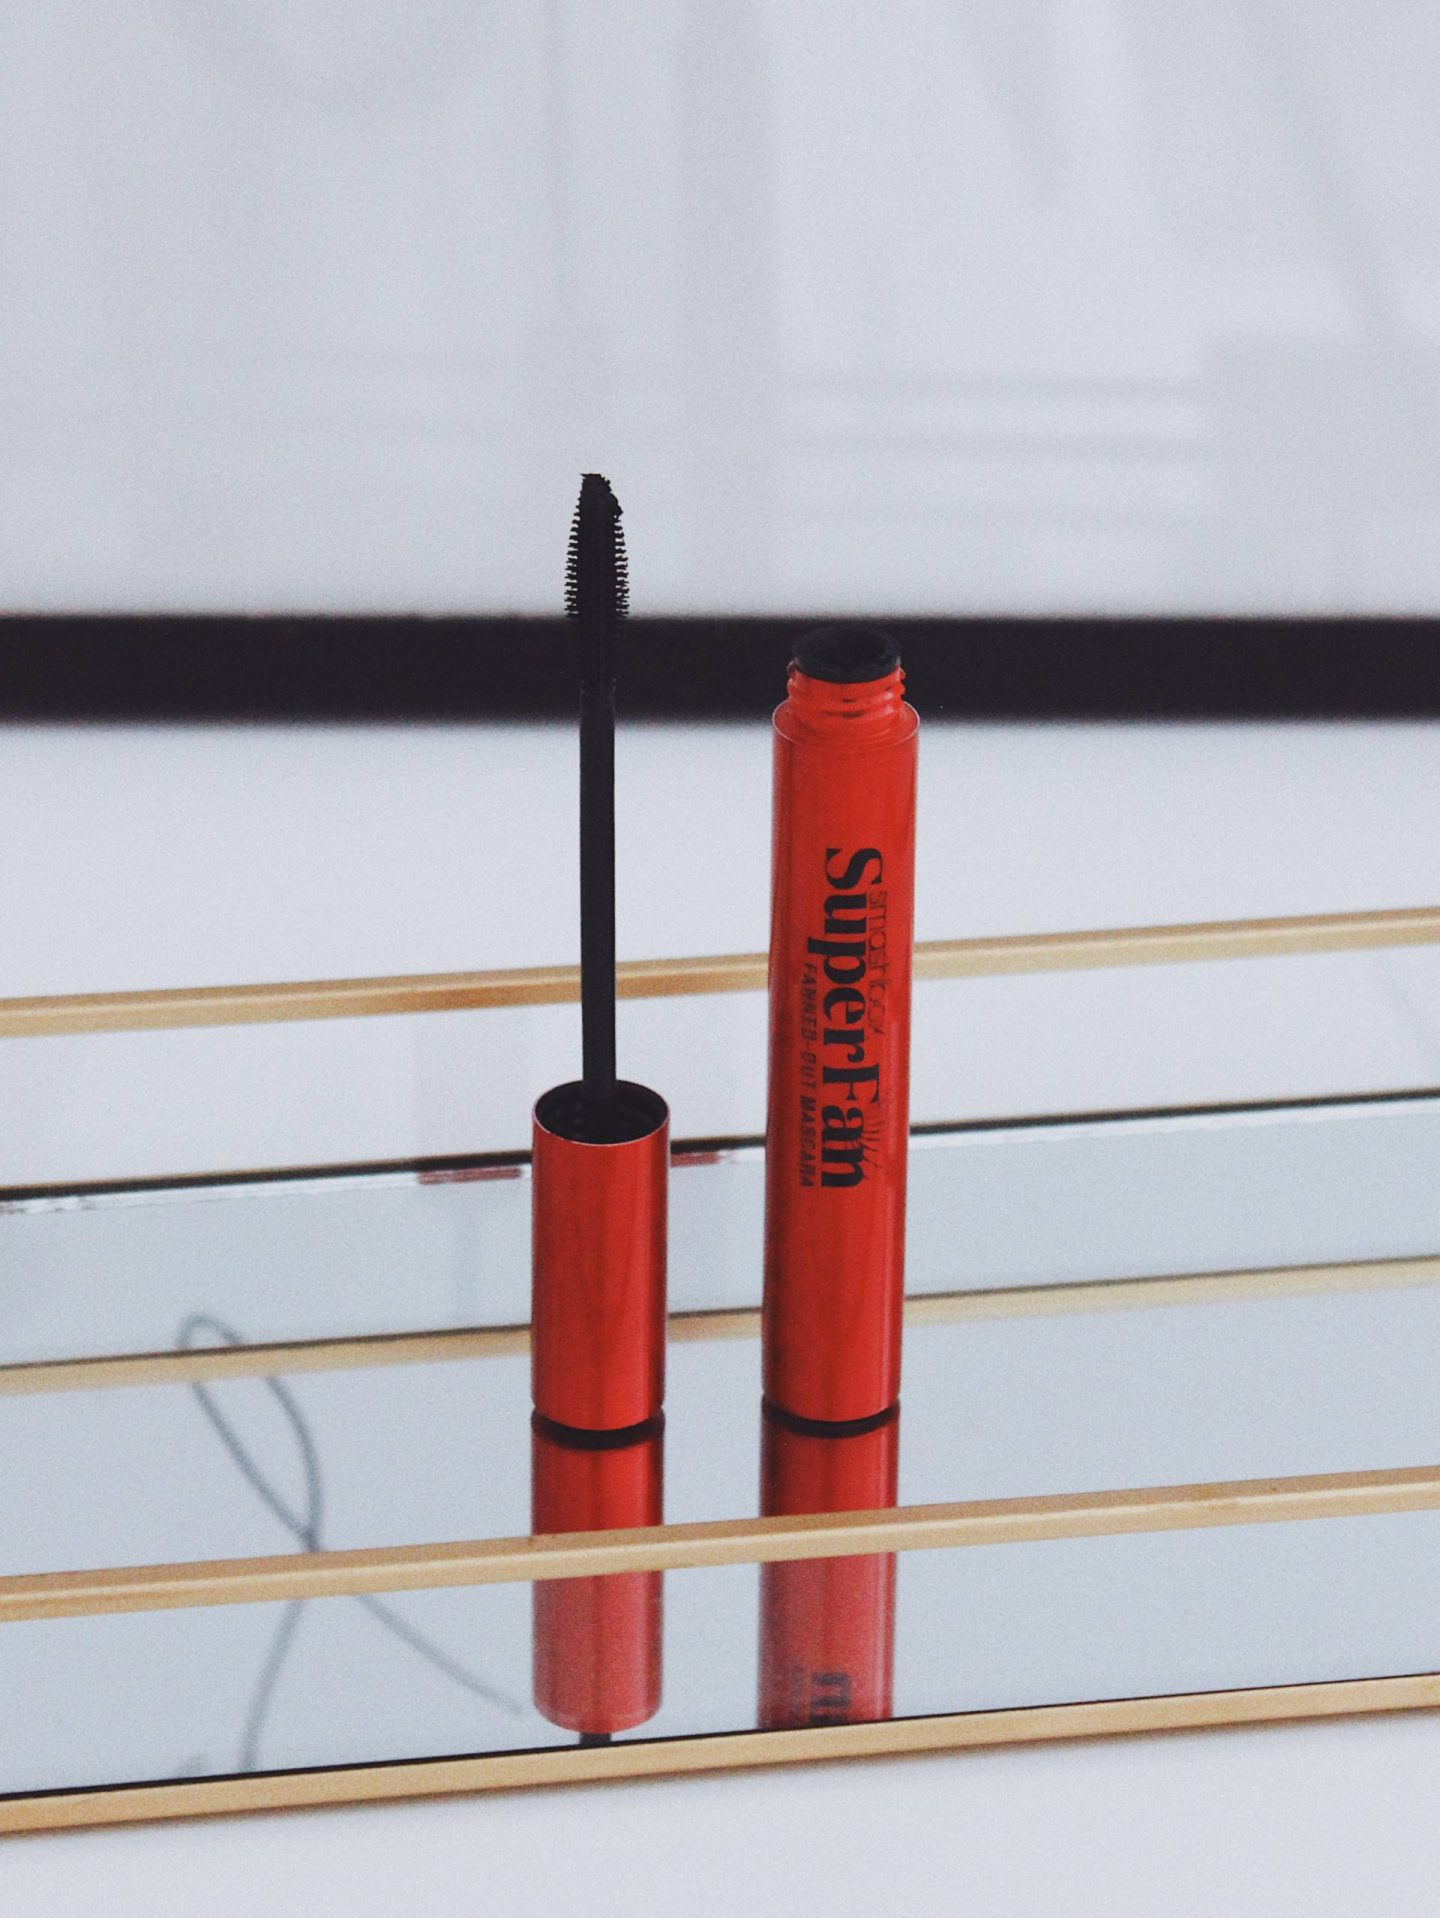 Smashbox SuperFan mascara review